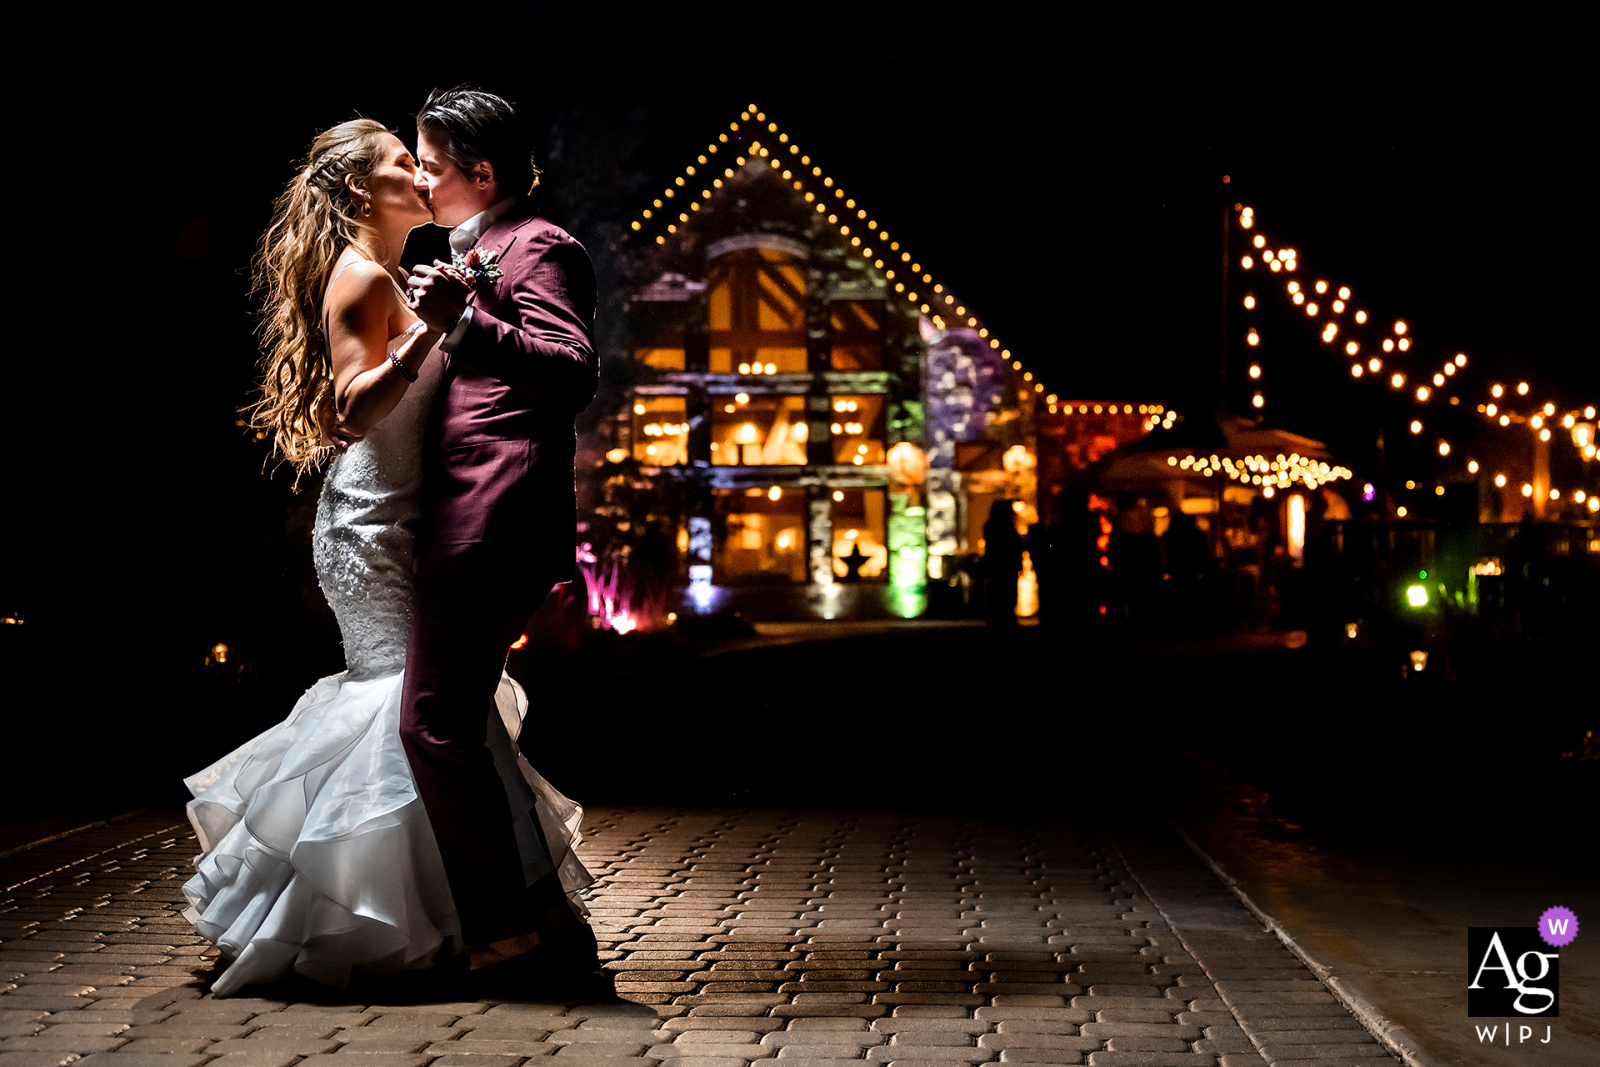 Della Terra Mountain Chateau, Estes Park, CO creative nighttime portrait of bride and groom with cool venue at night